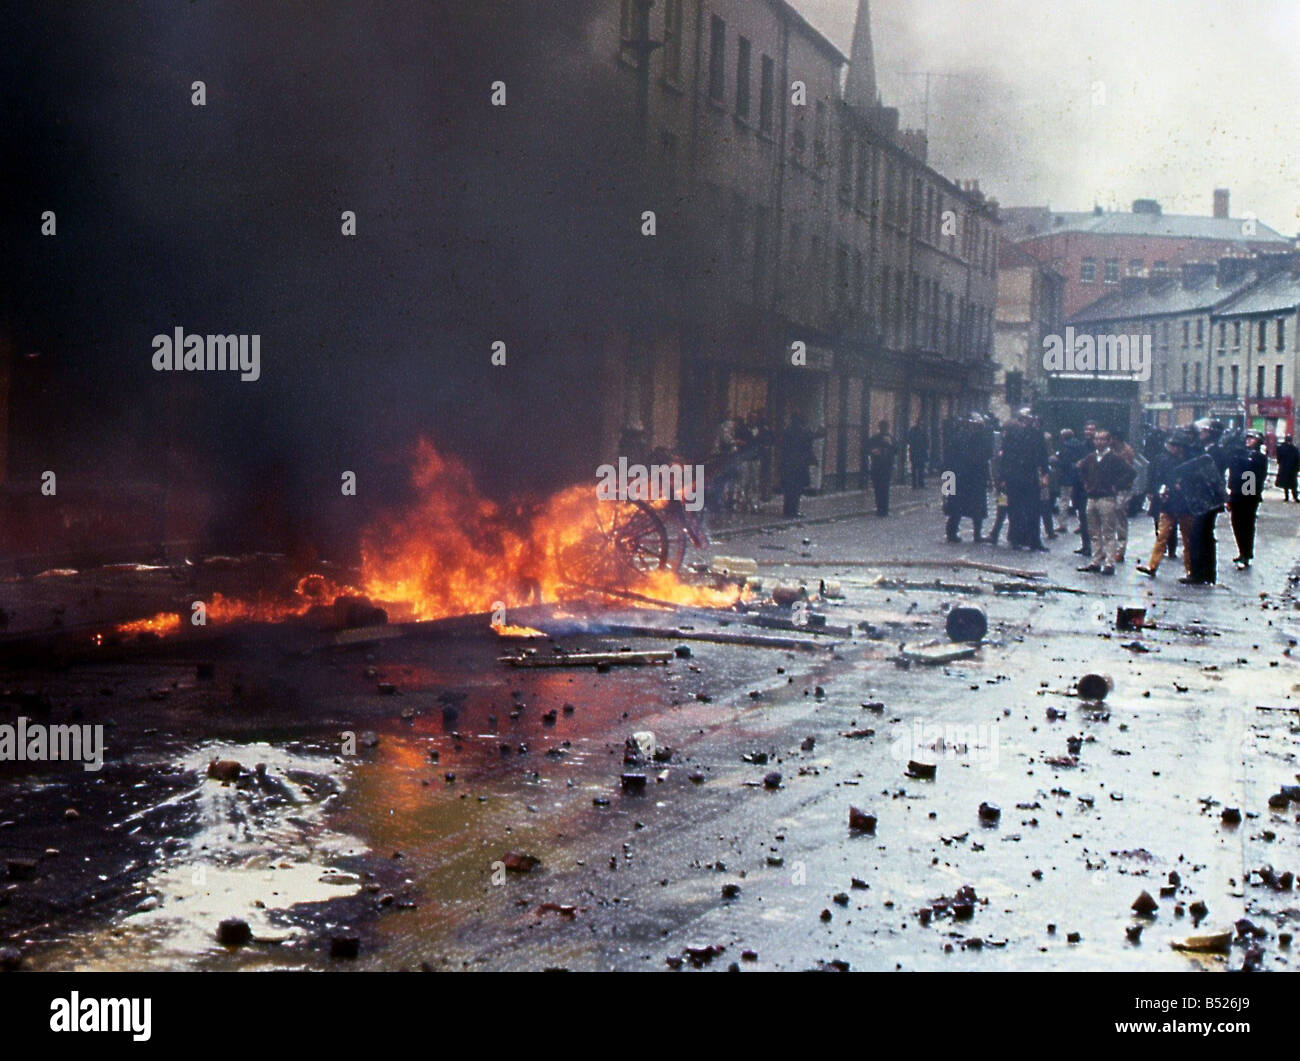 Northern Ireland Troubles 1969 Petrol bombs create fires as police & rioters clash in Londonderry after Apprentice - Stock Image